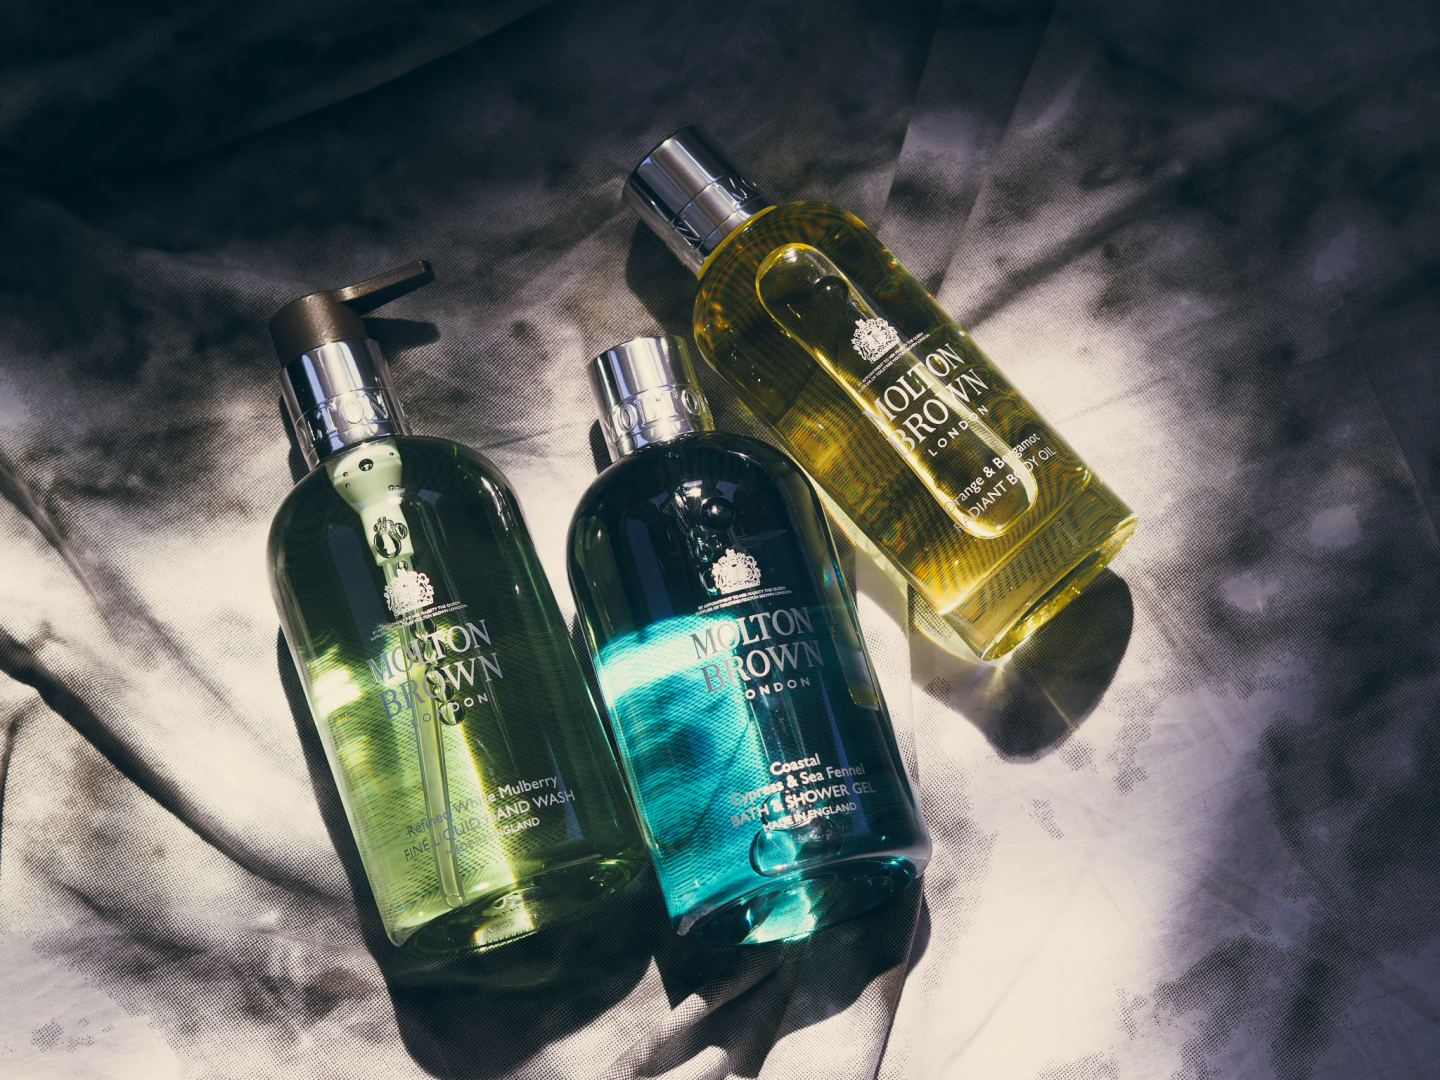 Beauty Bargain: Molton Brown MEGA Deal! OMG 45% Off!!